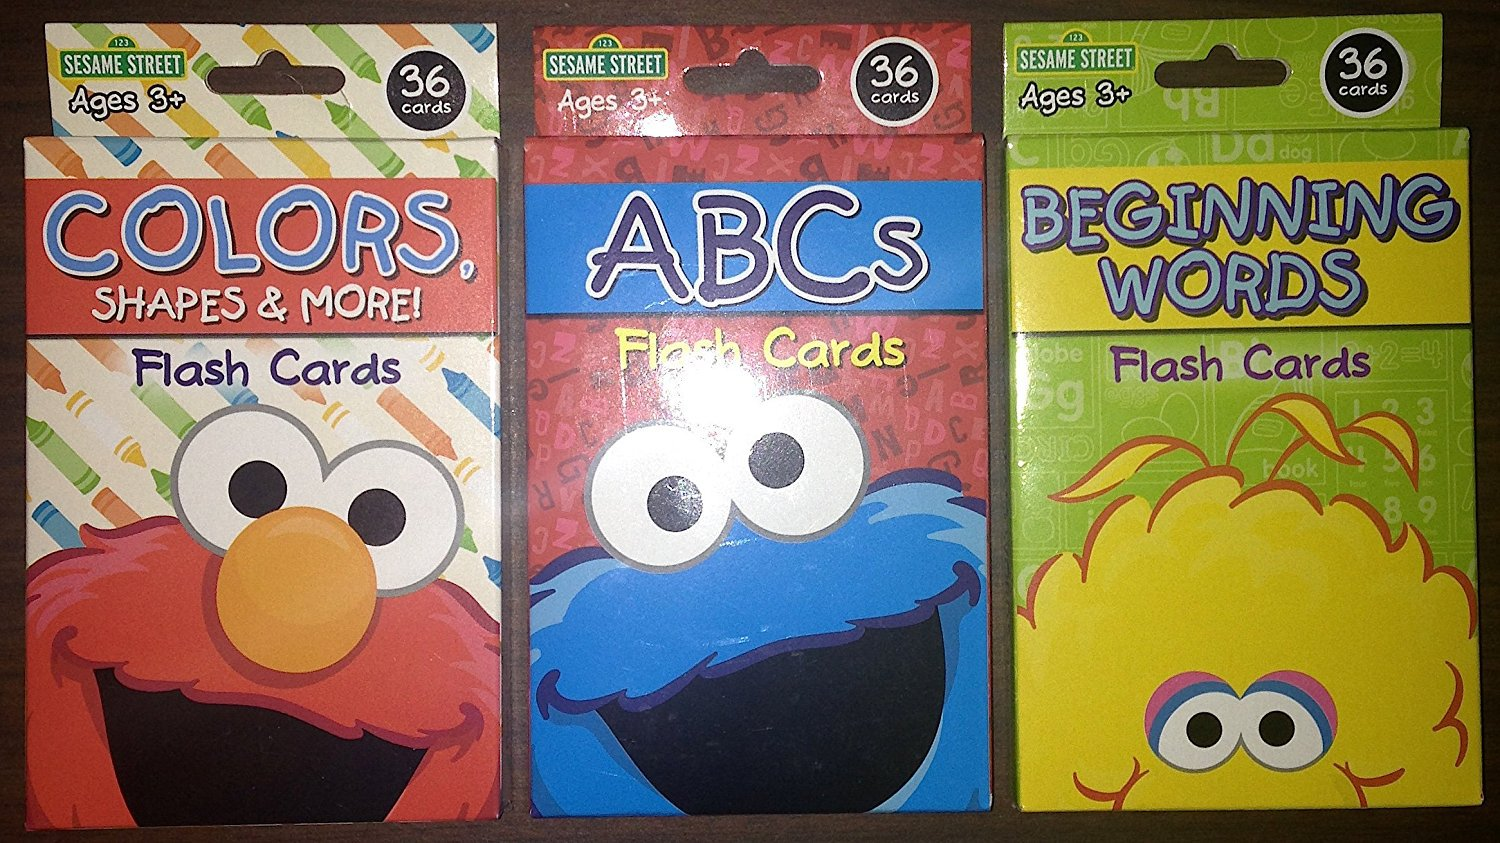 Sesame Street Colors Shapes & More, ABCs, and Beginning Words Flash Card 3 Sets Bundle